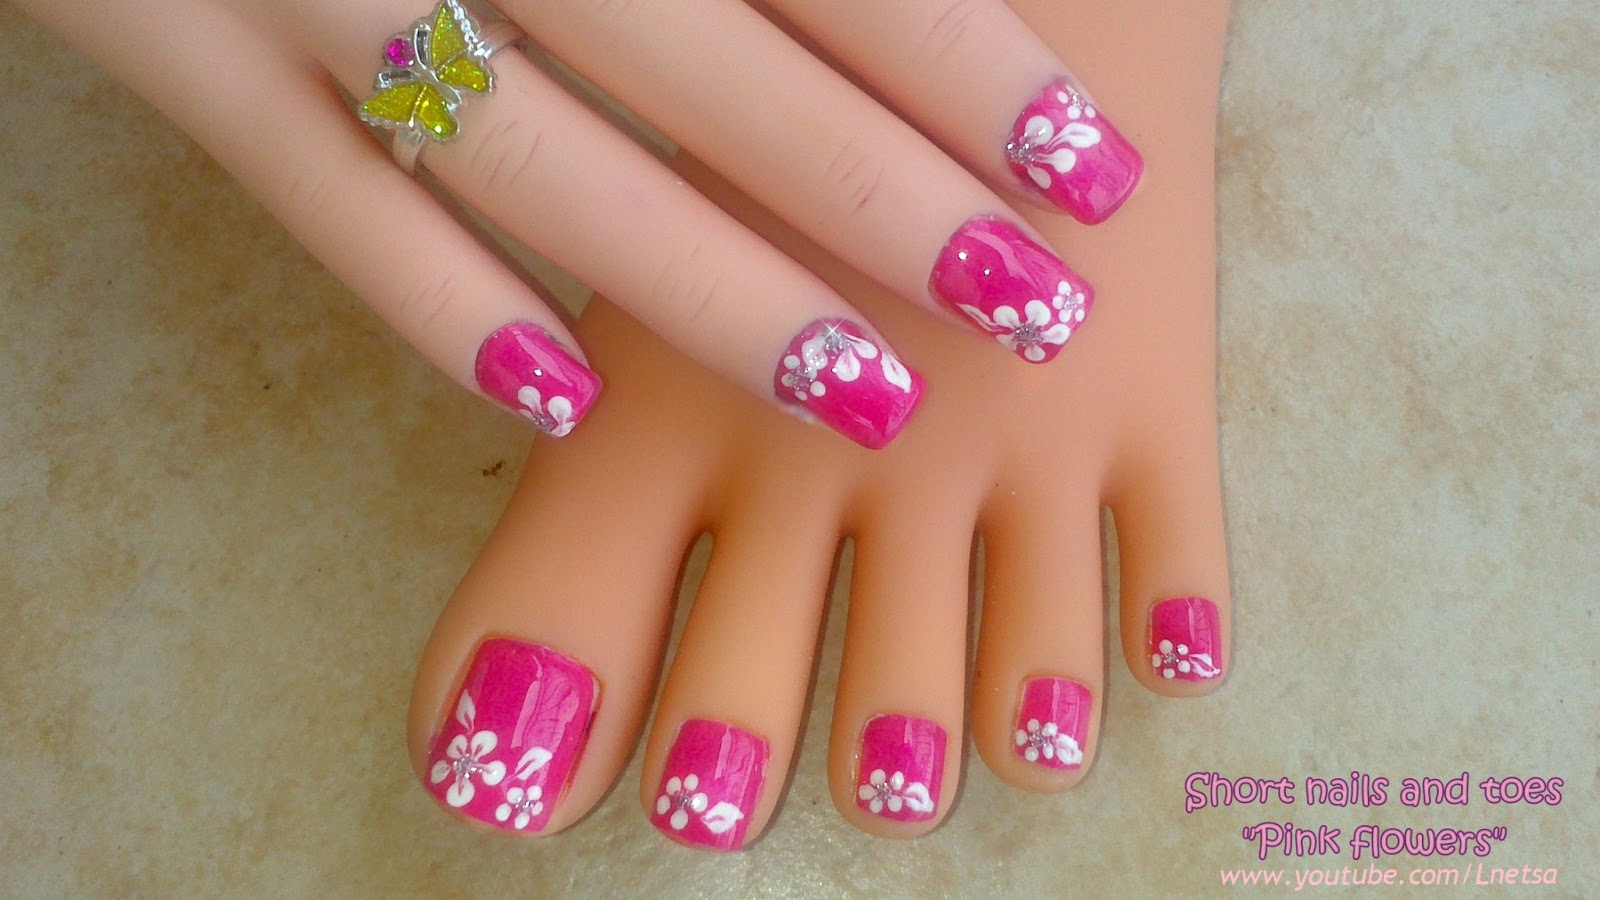 Lnetsa s nailart toe nail design short nails version pink toe nail design short nails version pink with easy white flowers prinsesfo Images